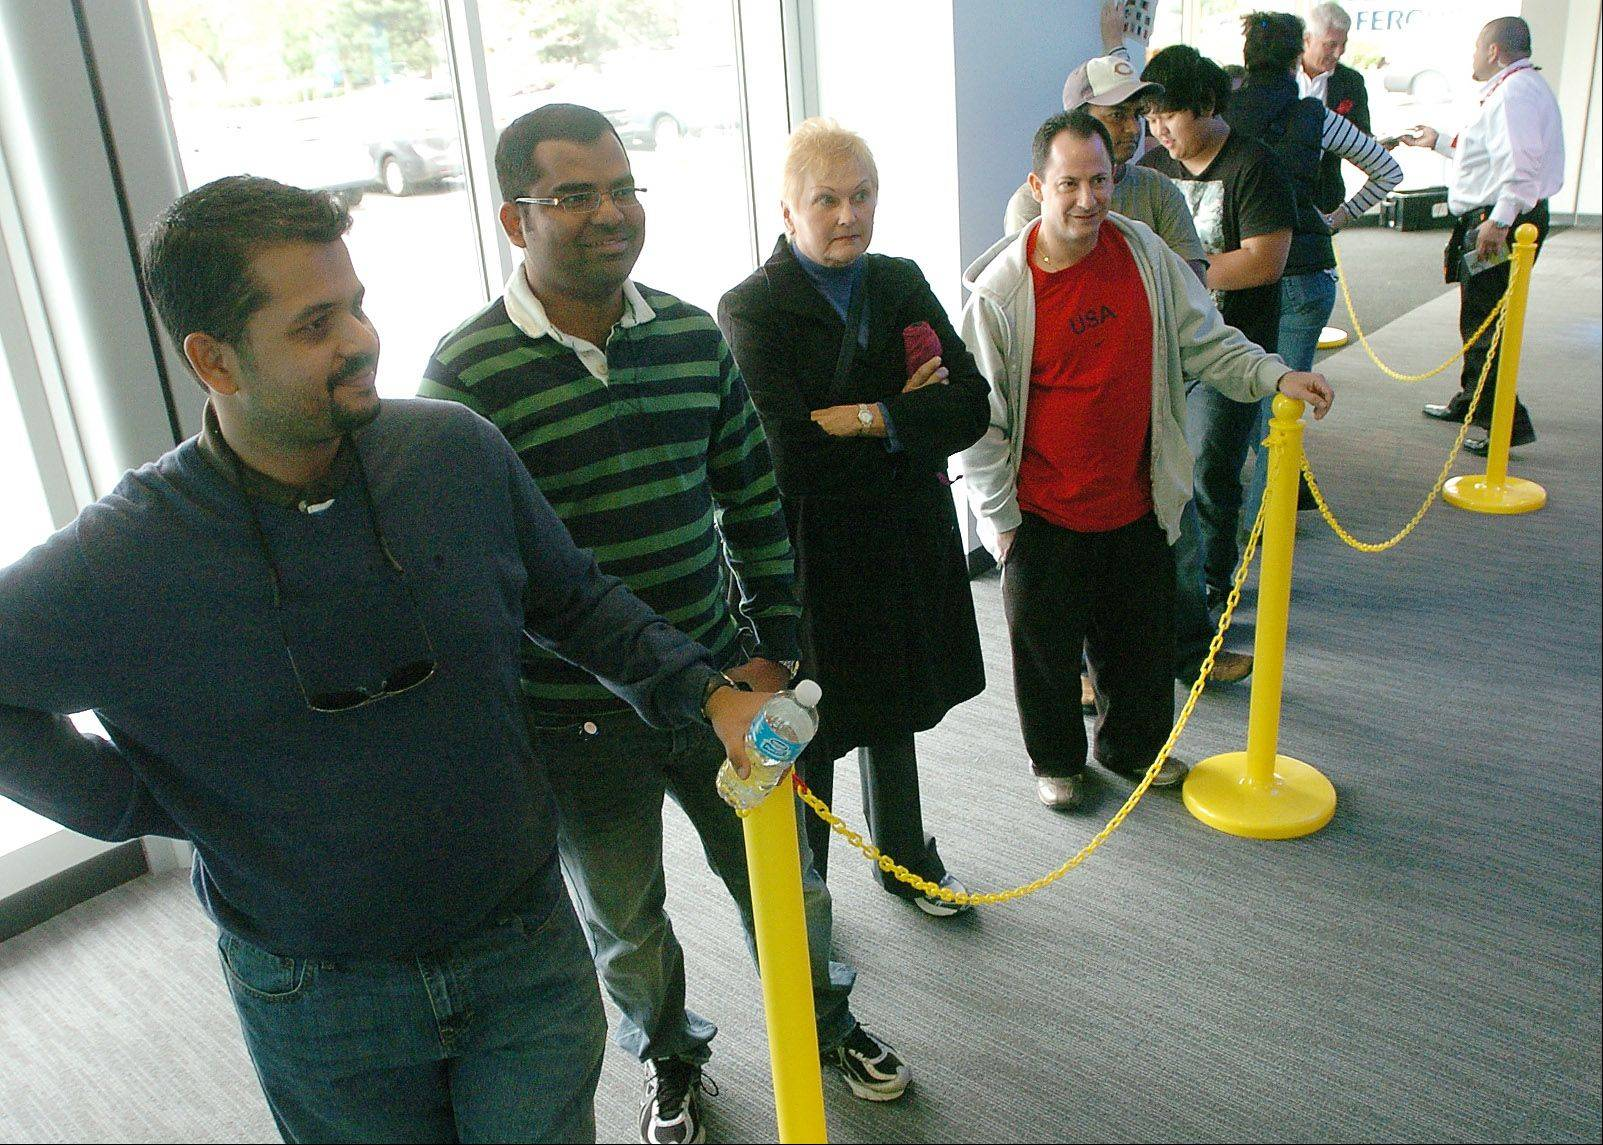 Anantha Subramanya of Wheeling, left, and Sanjeeva Kanduri of Arlington Heights wait in line to buy the new iPhone 5 the AT&T Store in Arlington Heights.